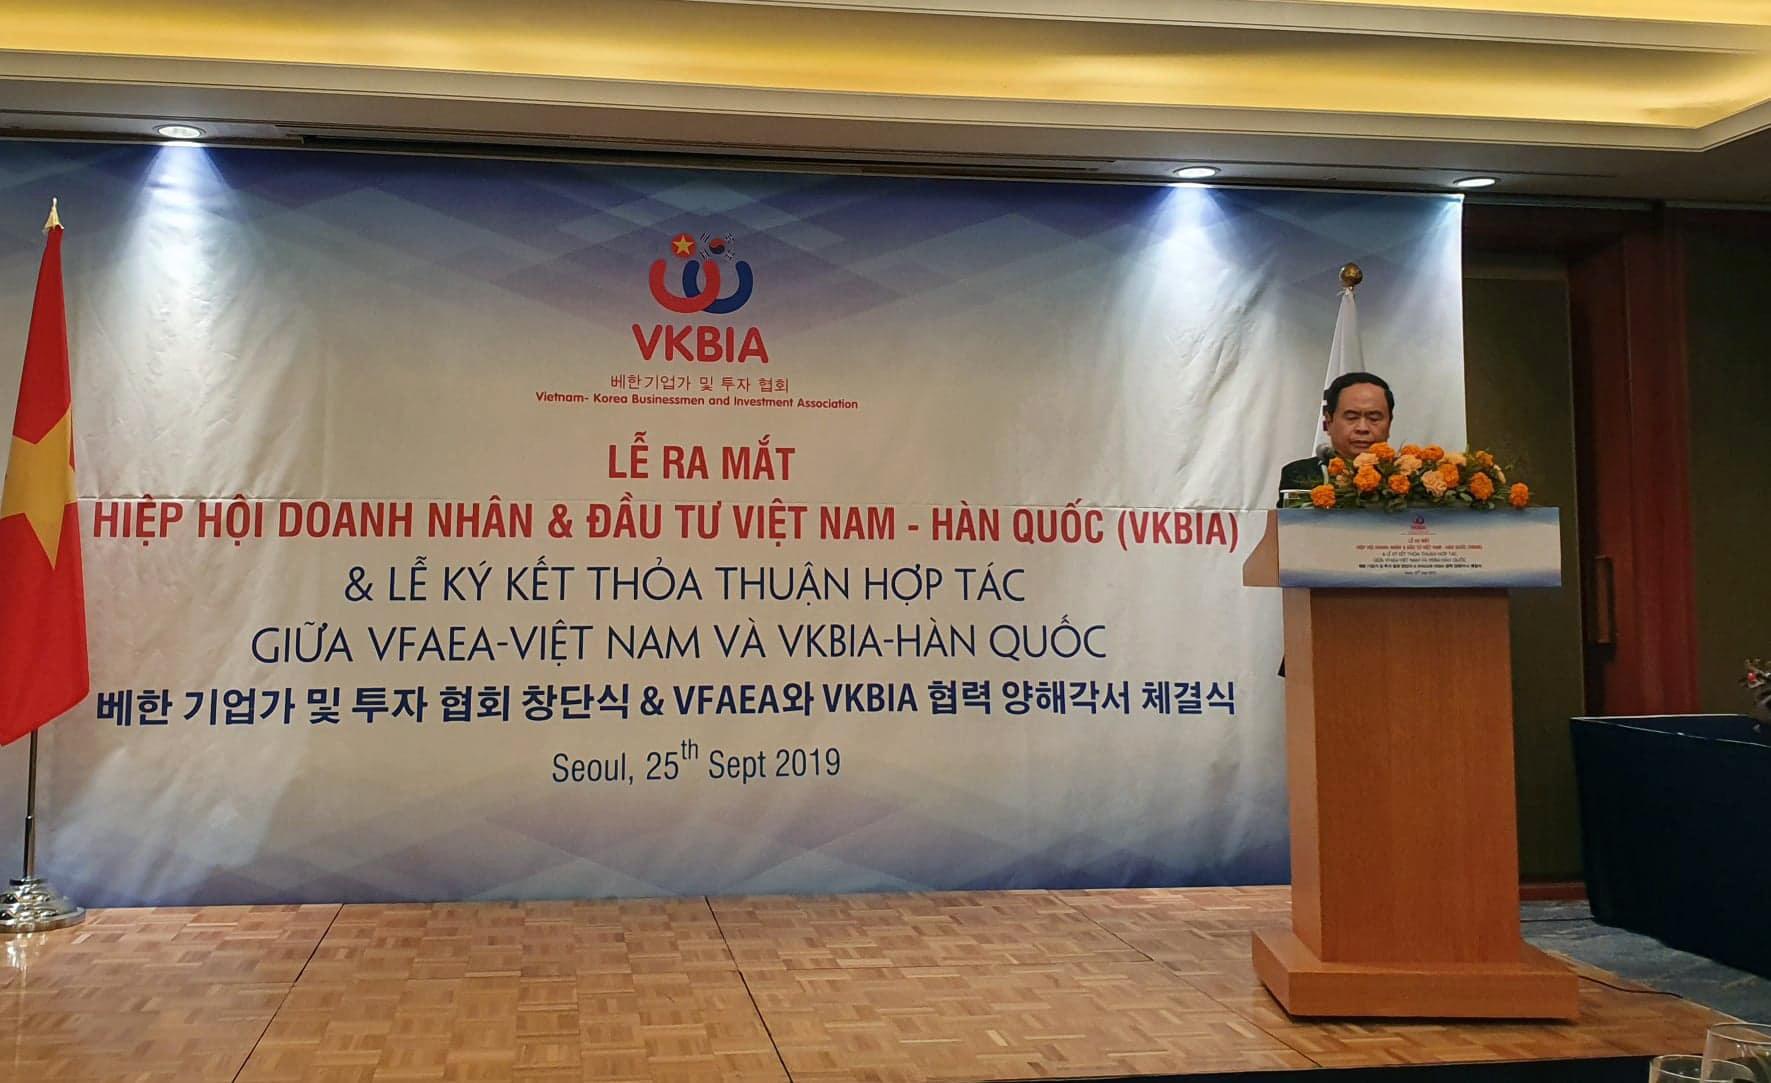 Vietnam - Korea Business and Investment Association launched